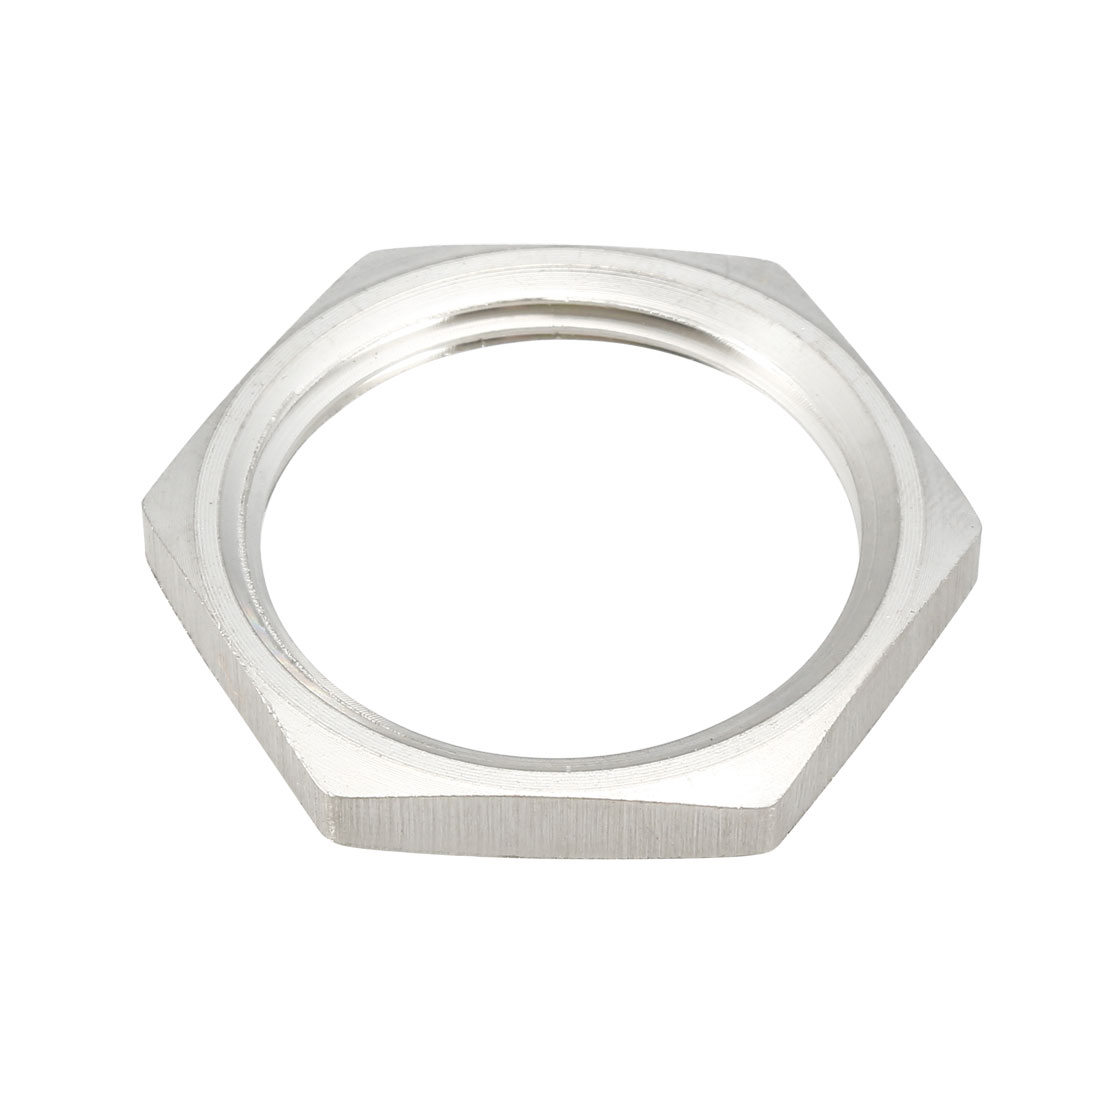 Pipe Fitting Hex Locknut SUS304 Stainless Steel G1 Inch Female Threaded